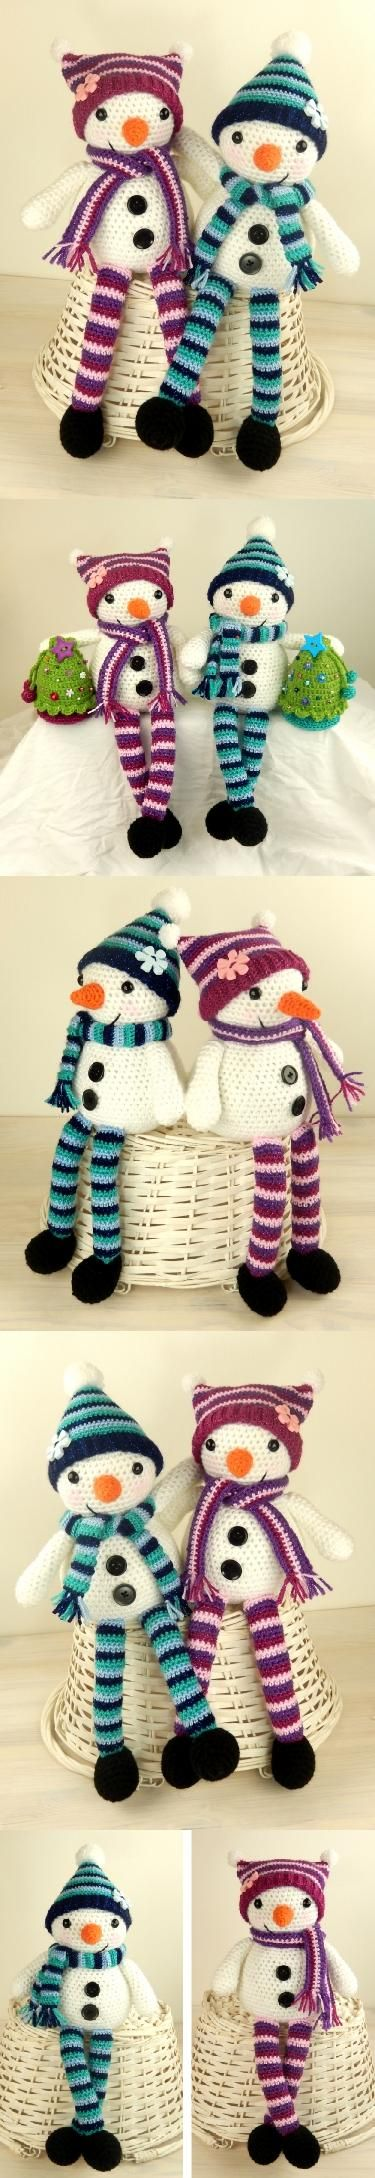 christmas crafts to make best 25 crochet snowman ideas on 3604